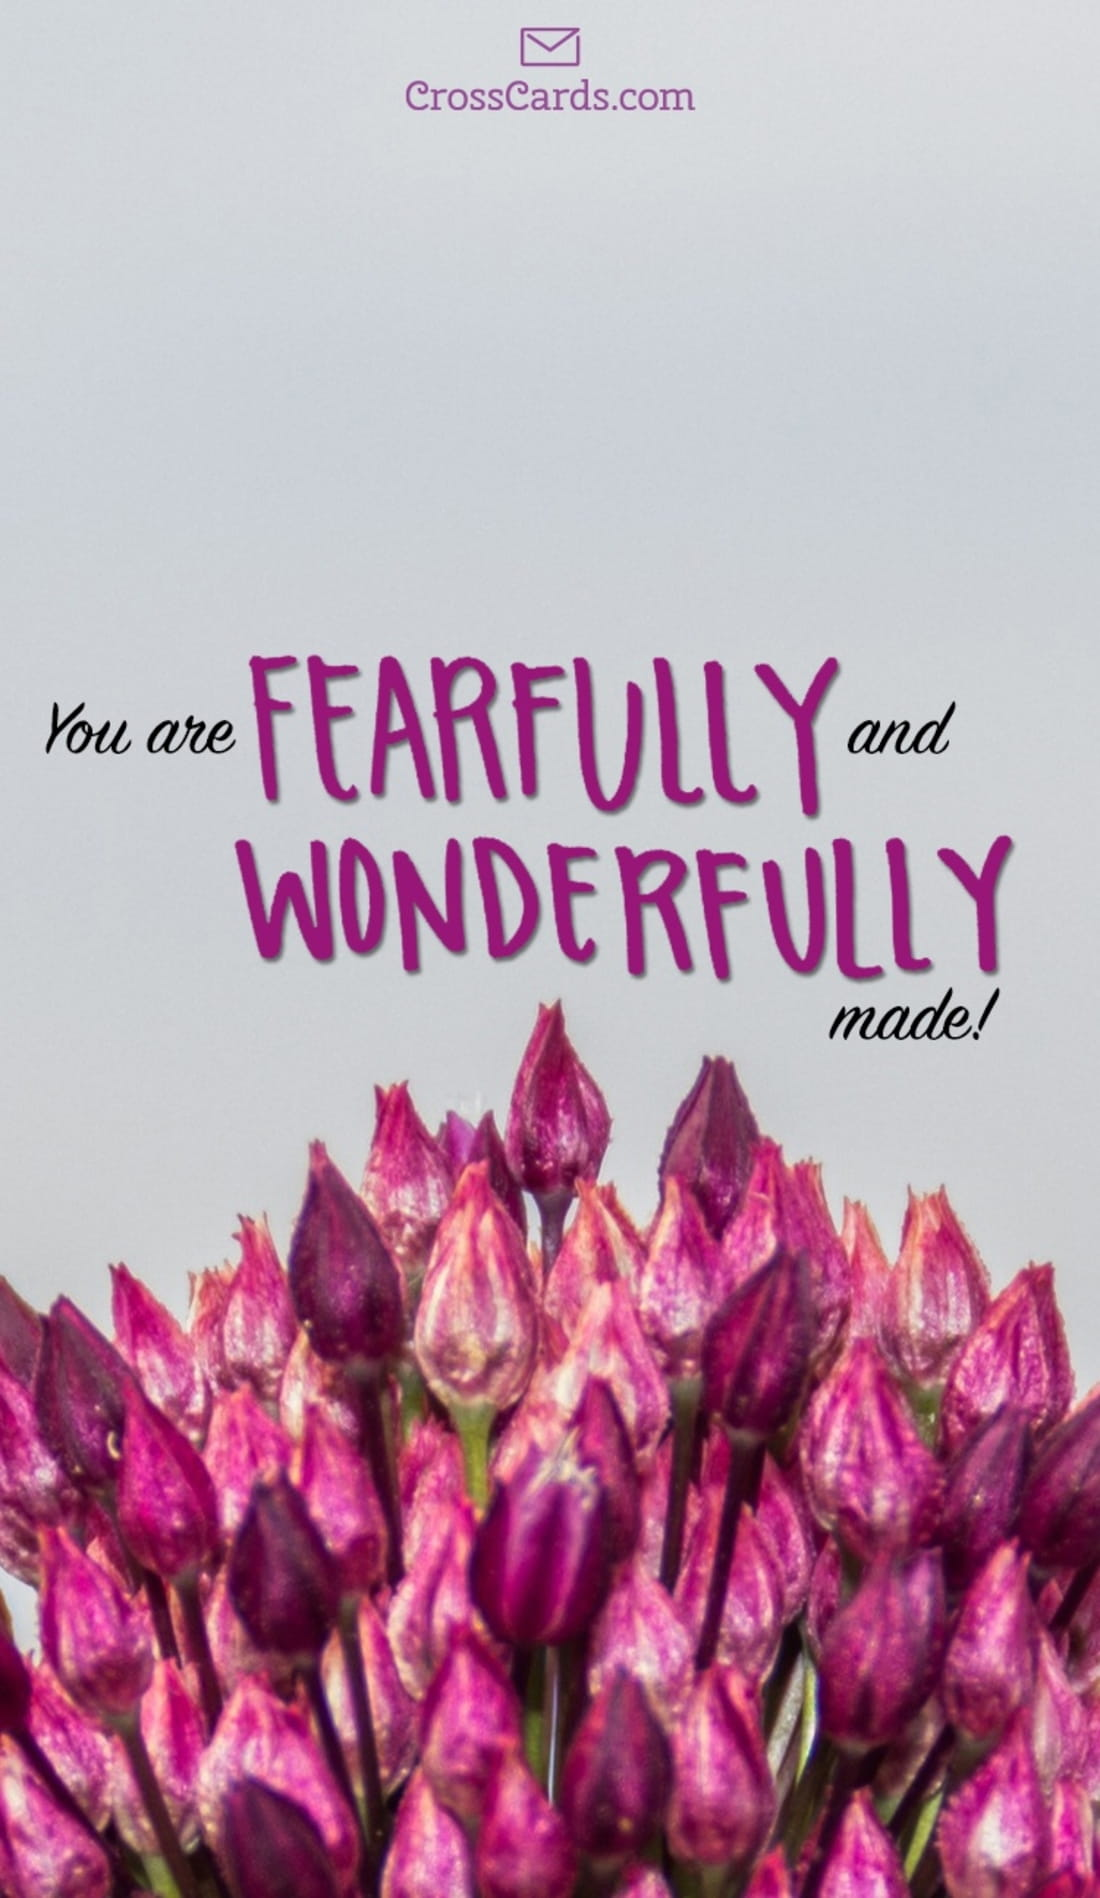 You are Fearfully and Wonderfully Made mobile phone wallpaper